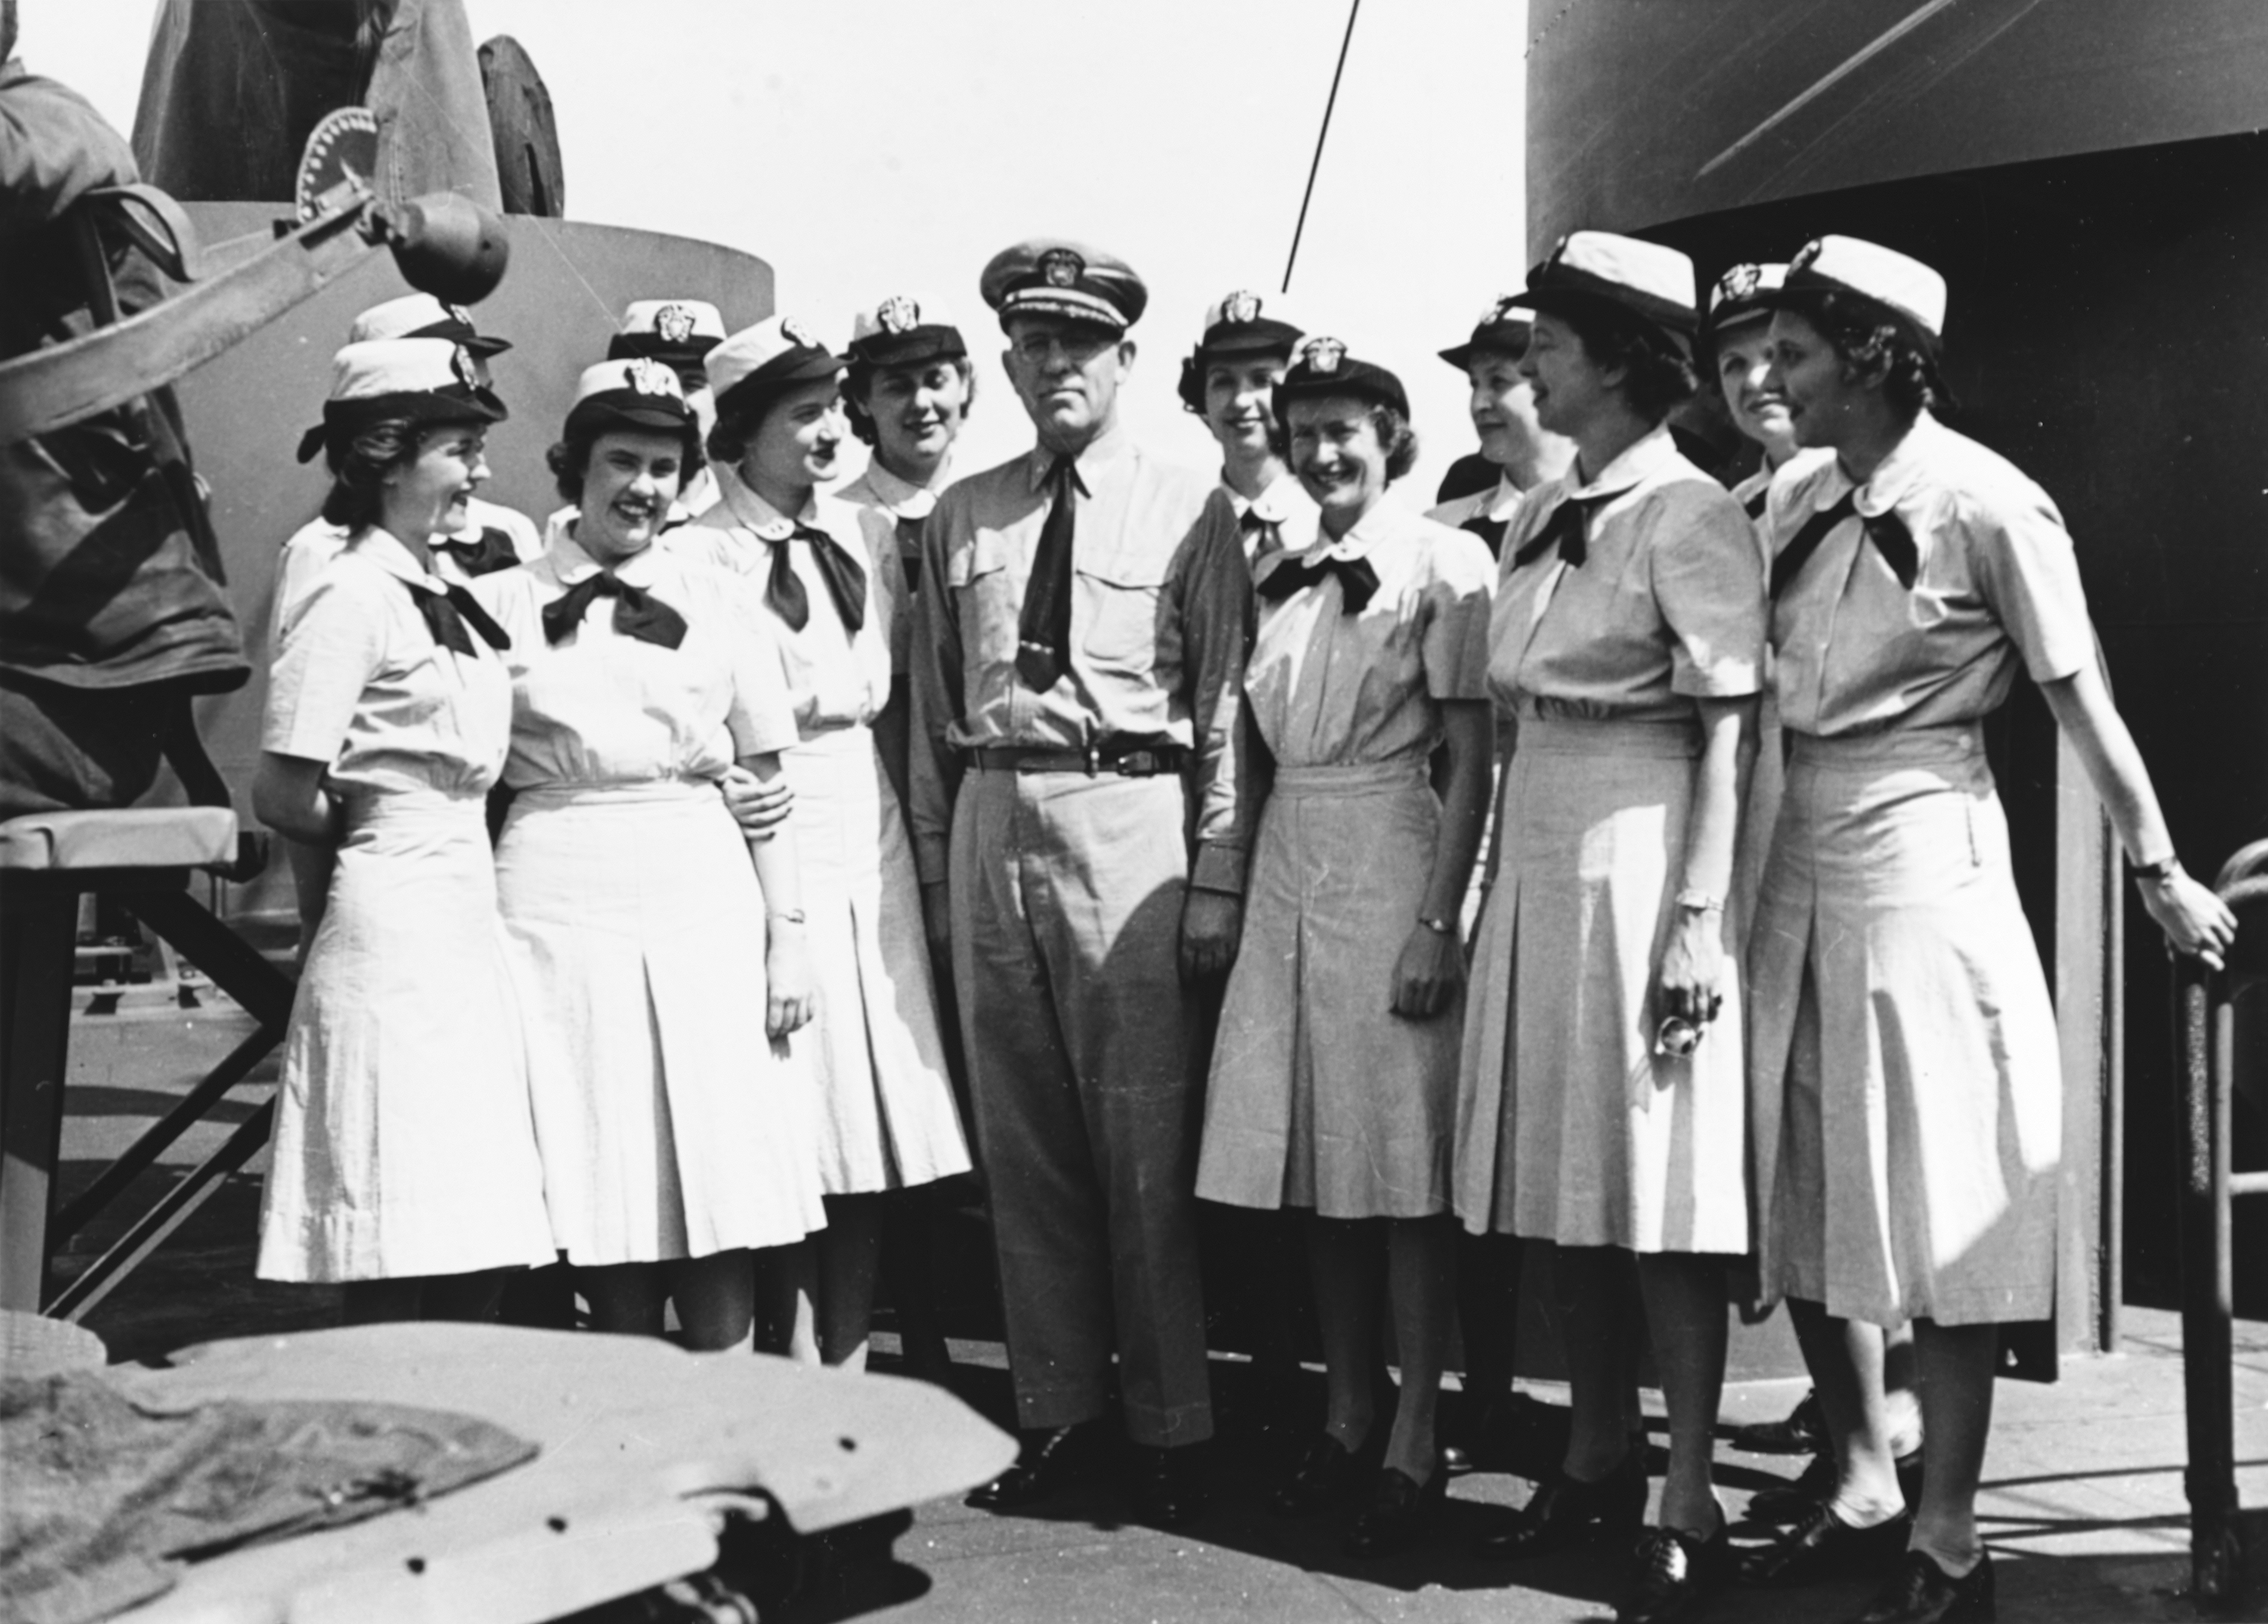 WAVES Pose With Captain on Bridge of USS Bundy